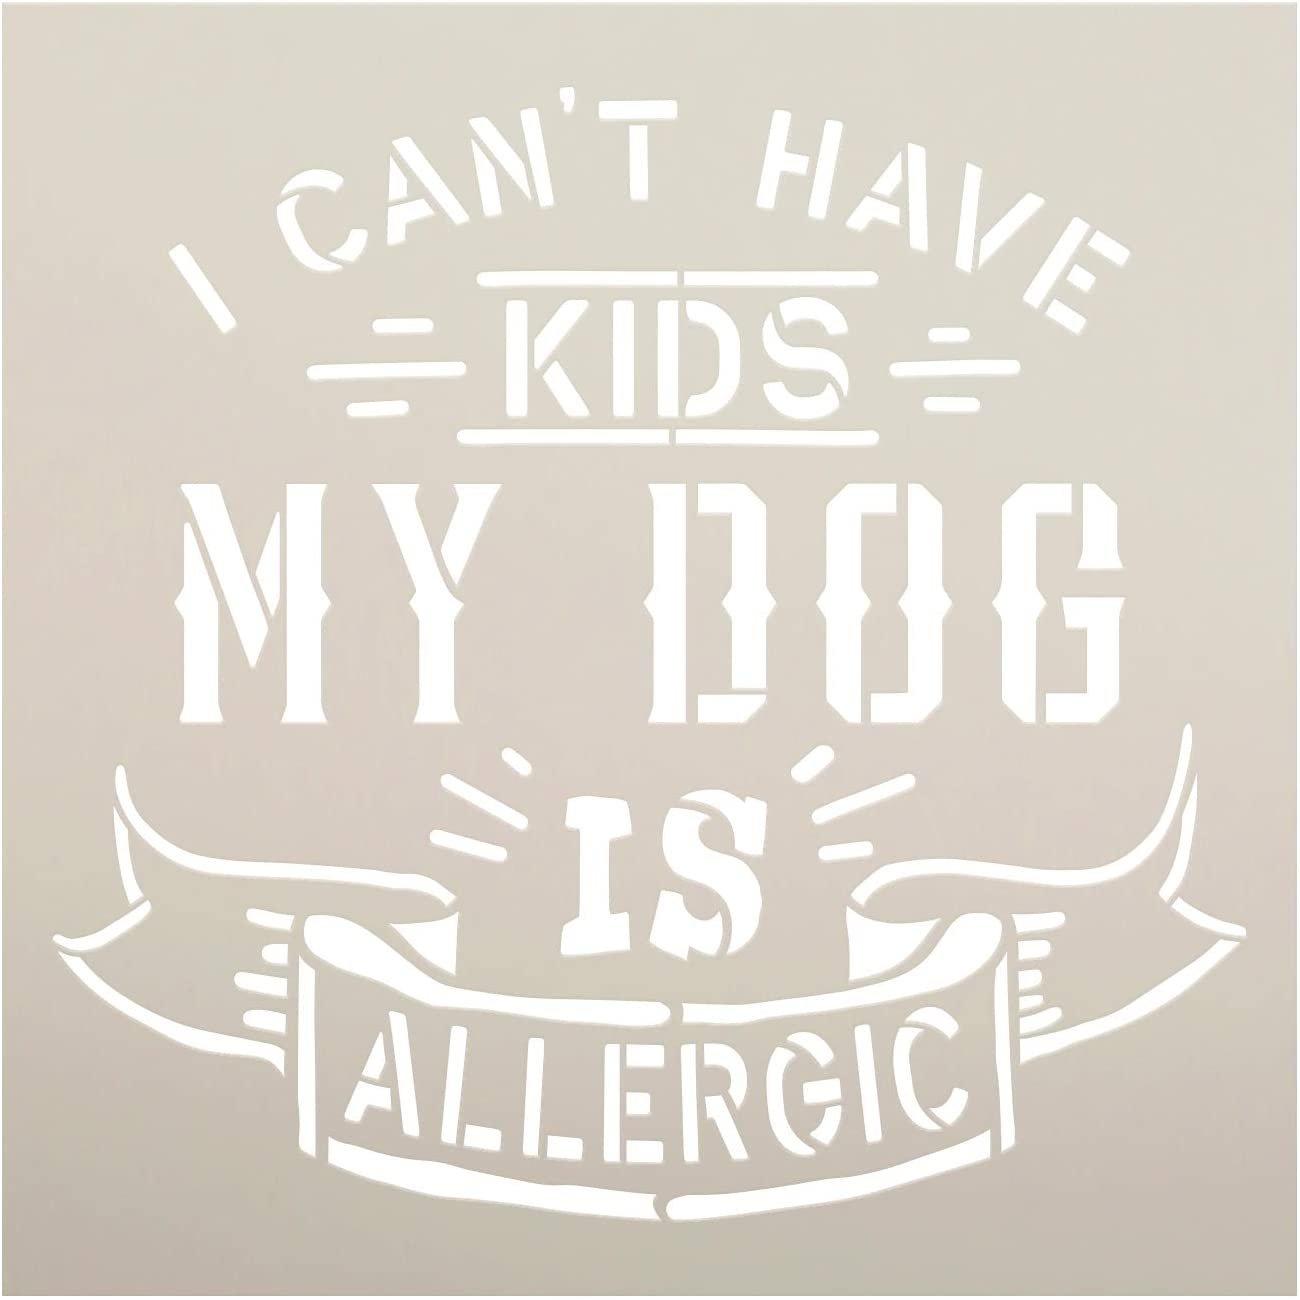 Cant Have Kids - Dog is Allergic Stencil by StudioR12 | DIY Pet Lover Home Decor Gift | Craft & Paint Wood Sign Reusable Mylar Template | Select Size